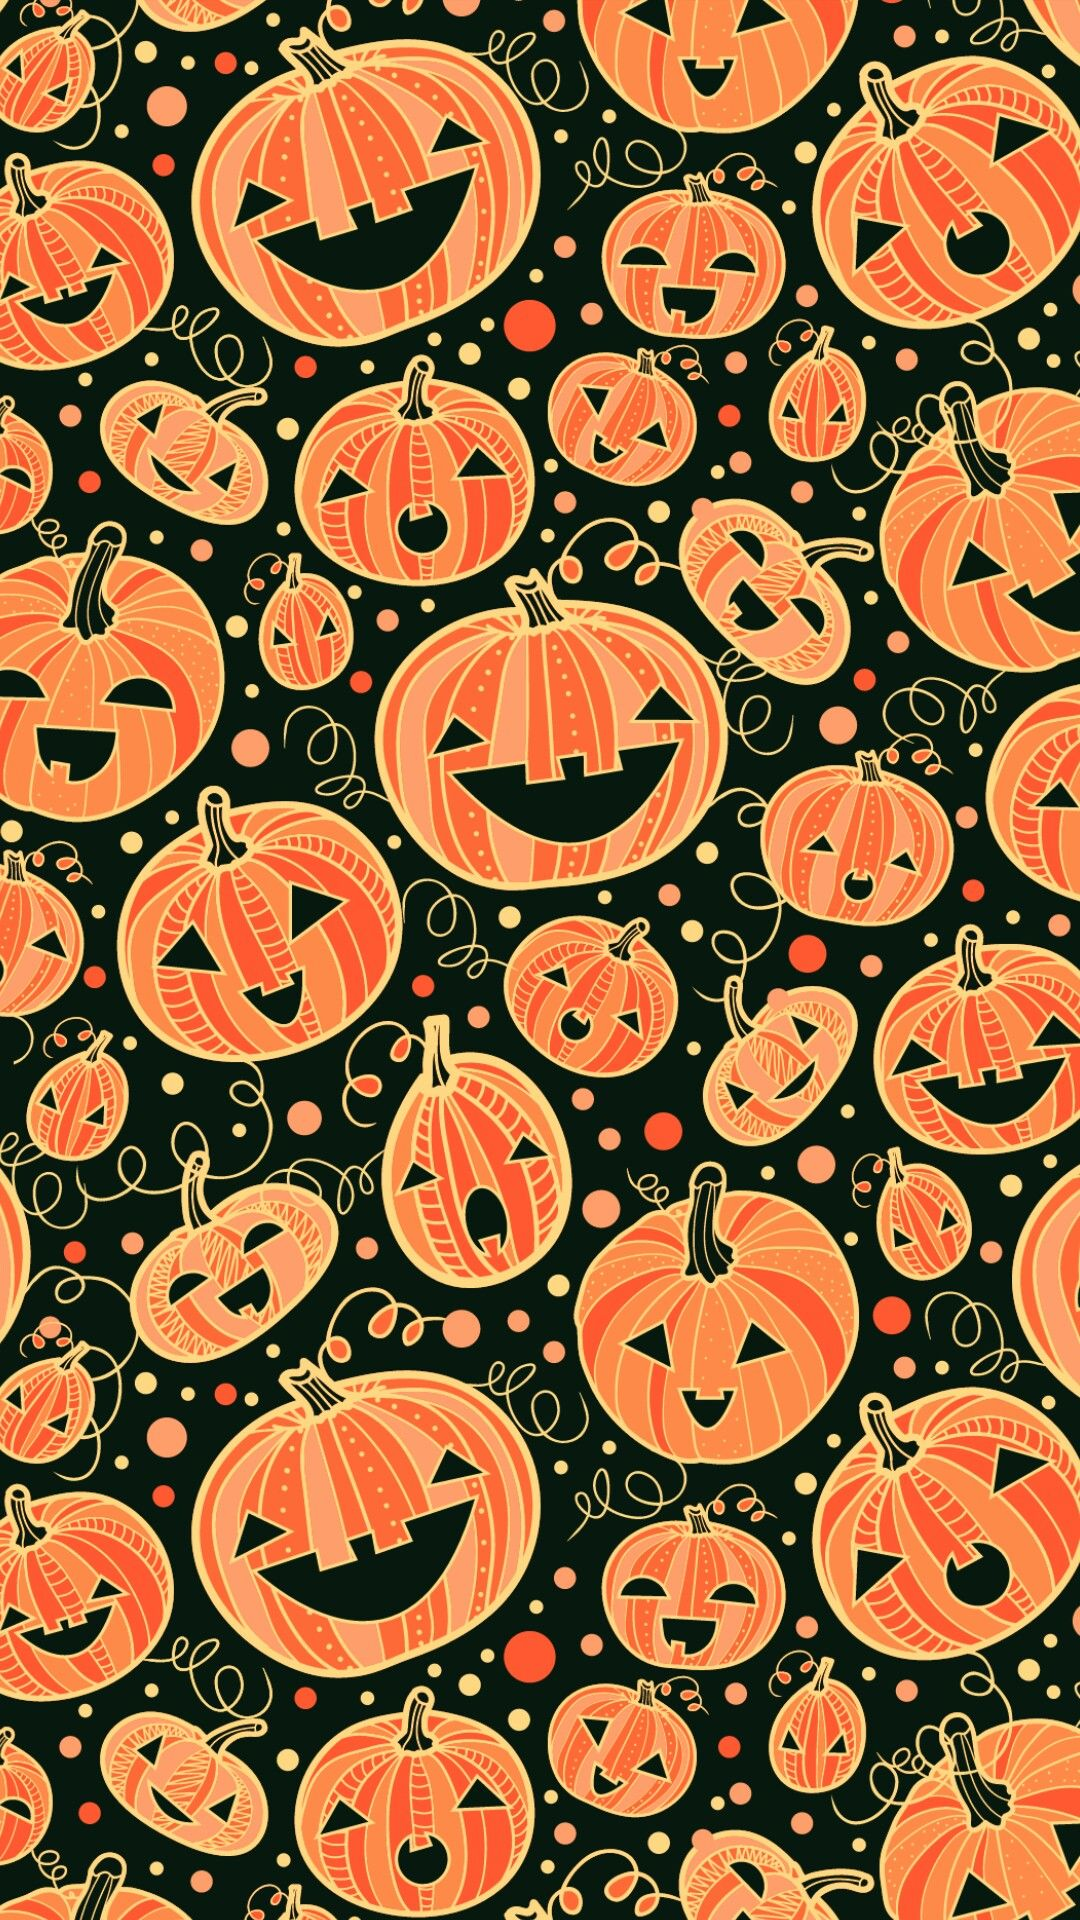 Pin By Paint The Town On Wallpapers Art Halloween Wallpaper Iphone Fall Wallpaper Halloween Wallpaper